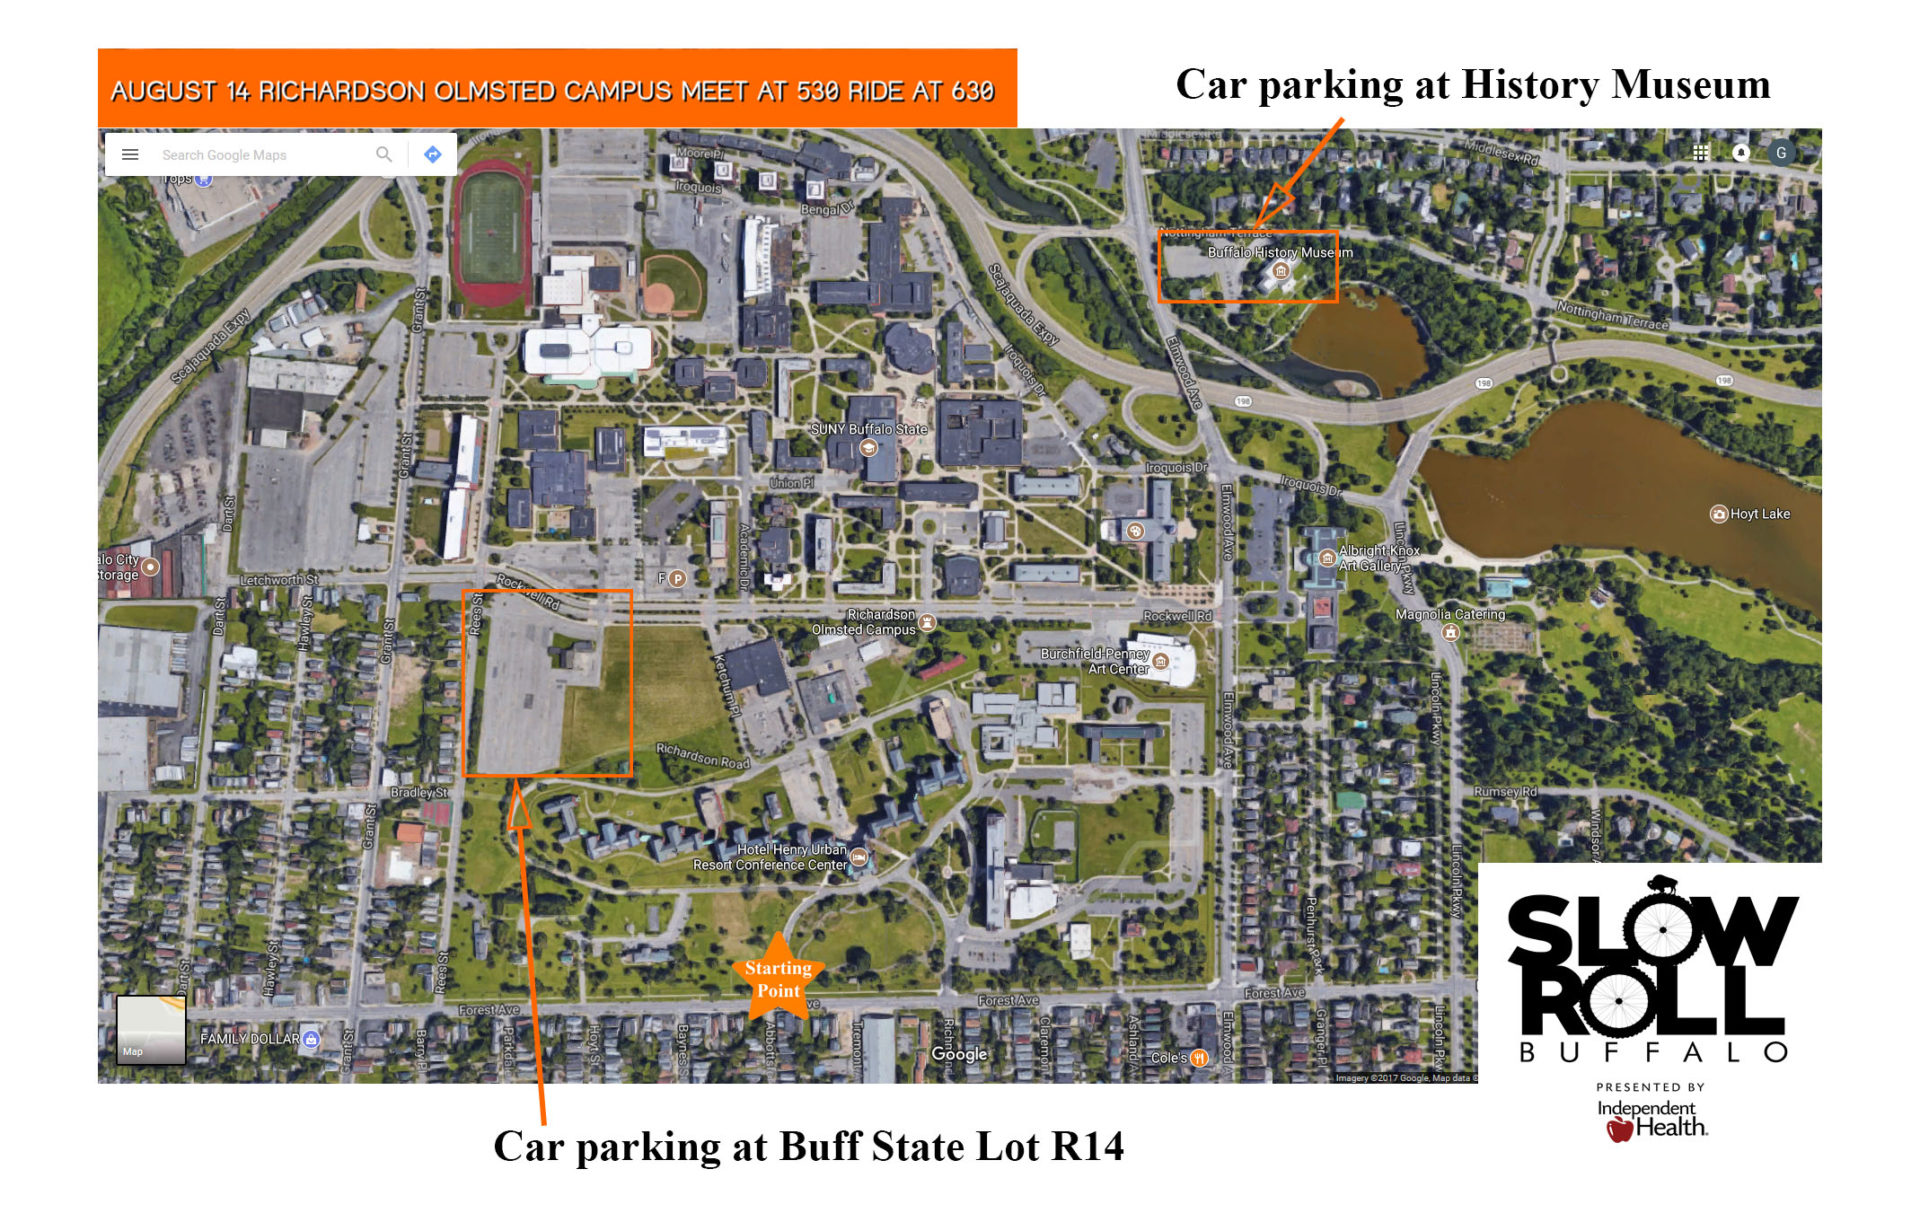 Site Maps - Page 5 of 11 - Slow Roll Buffalo